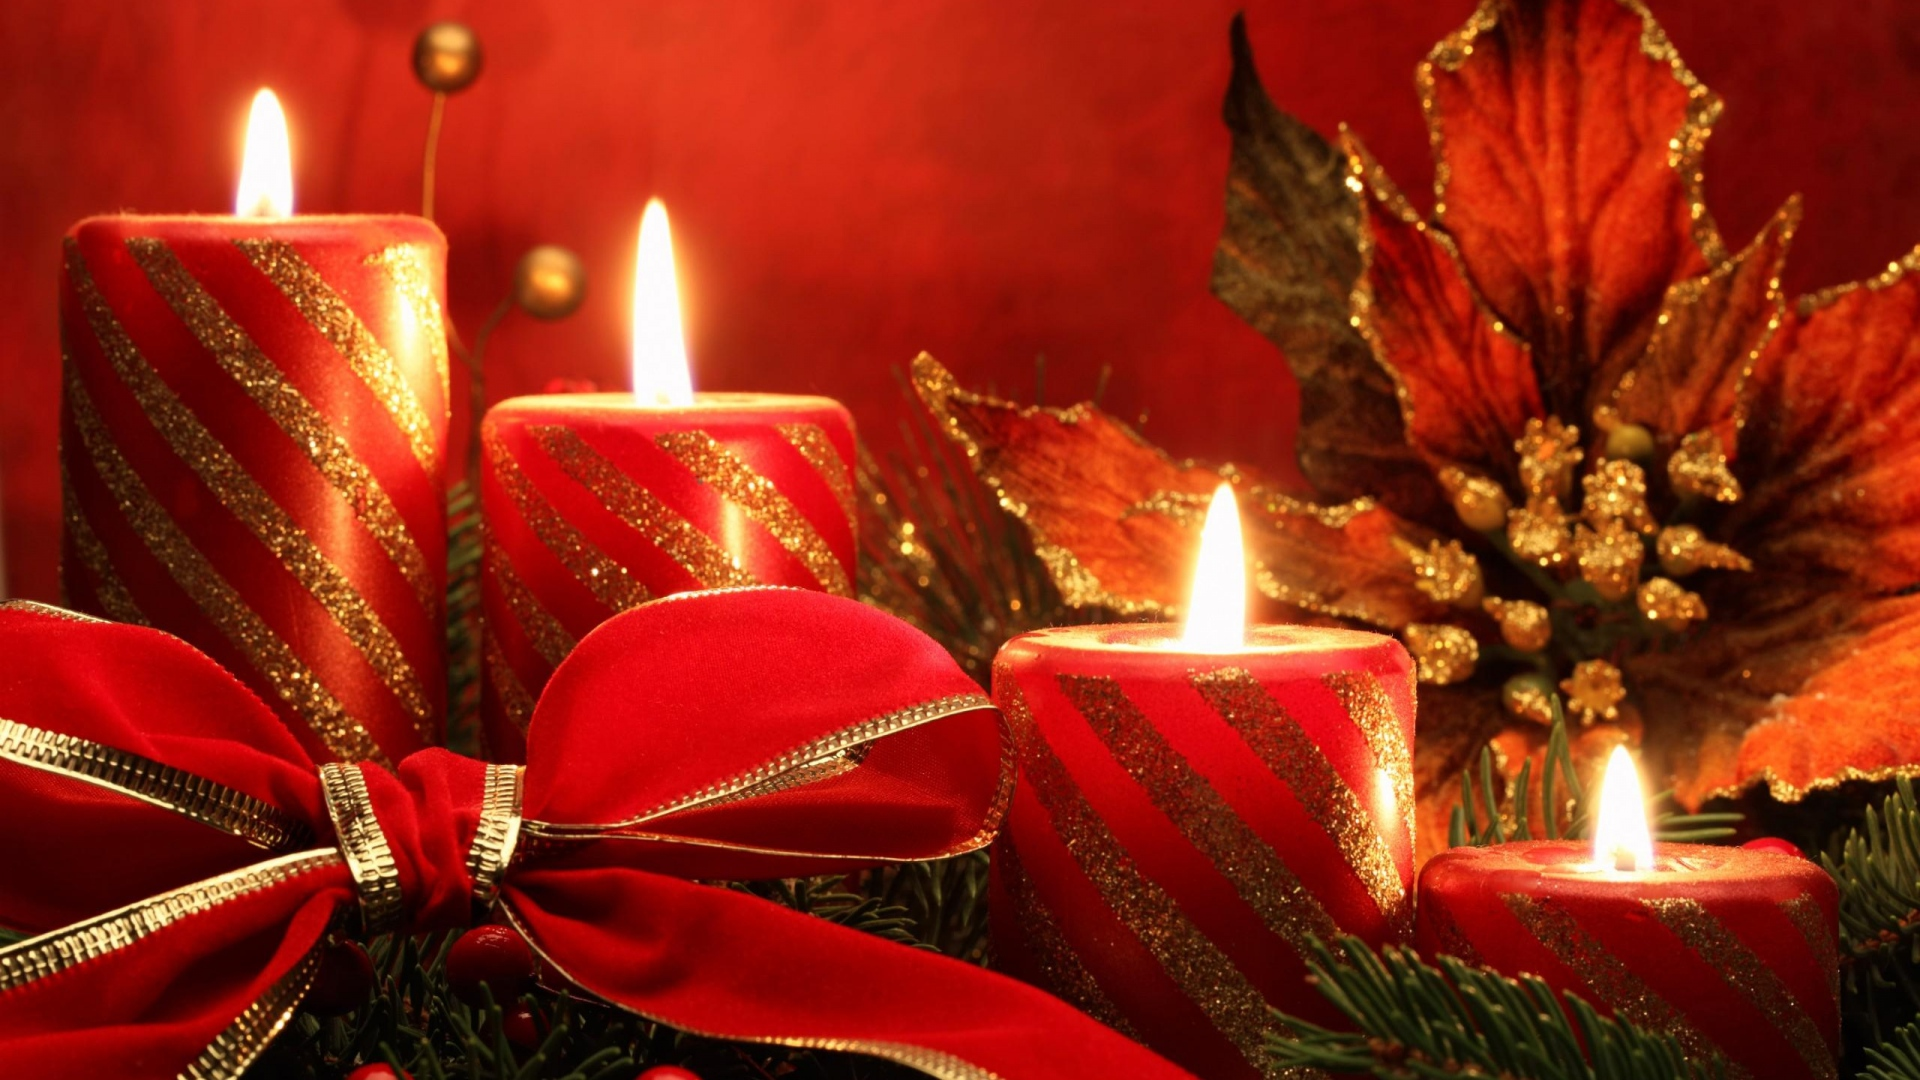 happy christmas wishes candles gifts hd wallpaper